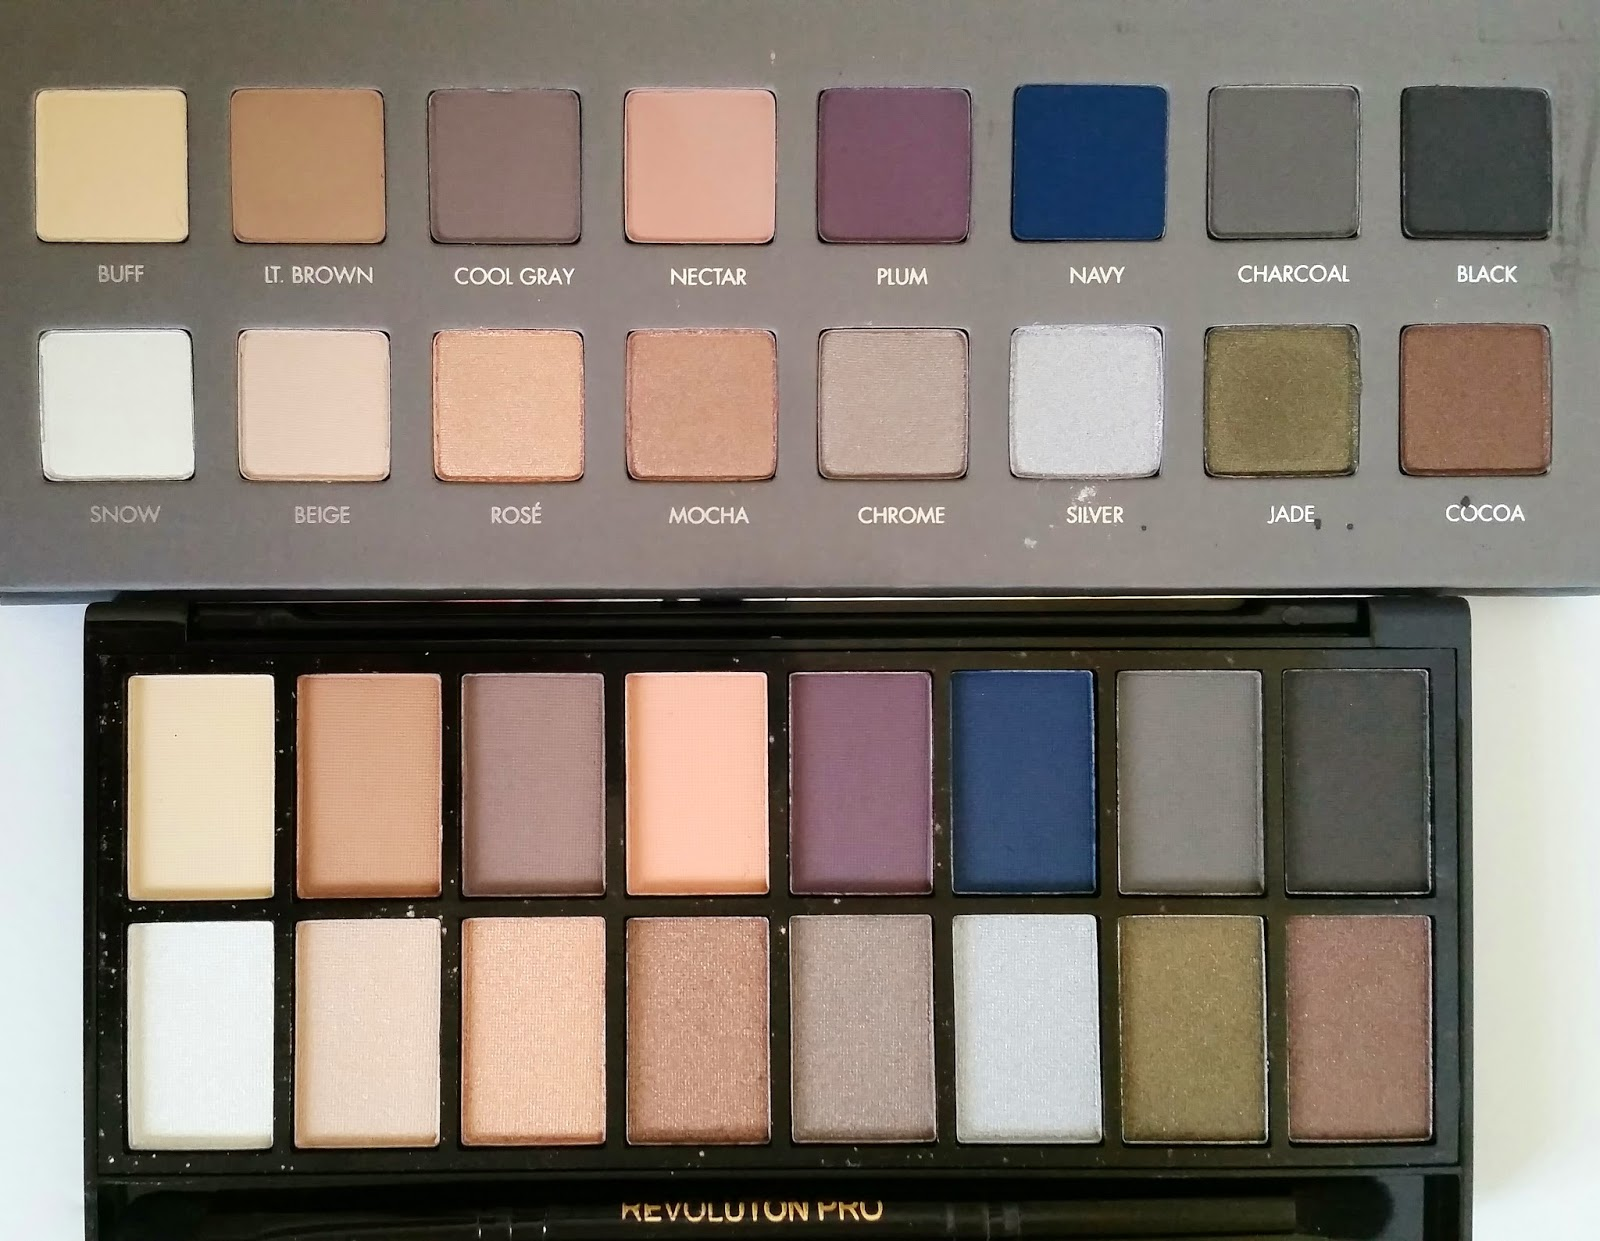 Makeup Revolution Iconic Pro 2 Review And Swatches The Budget Beauty Blog